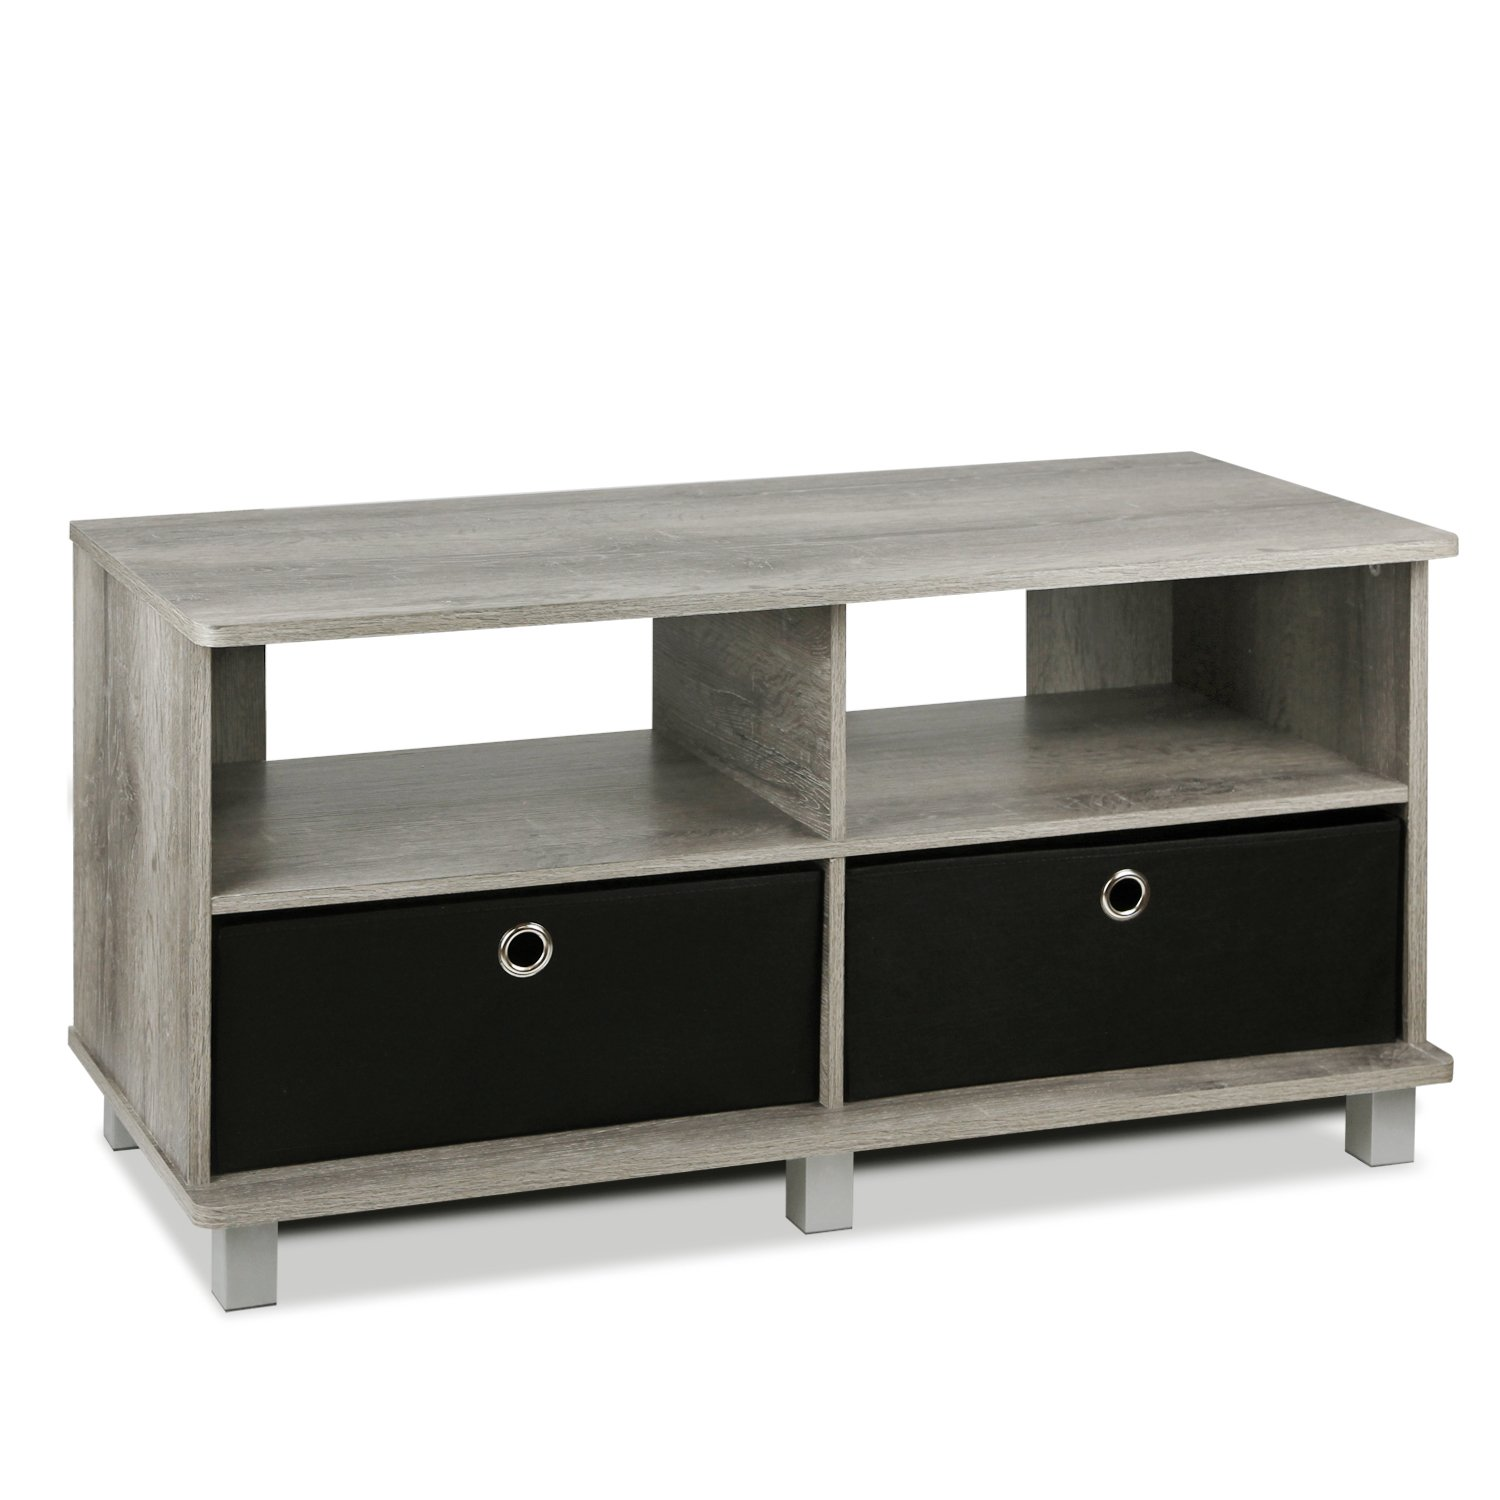 Furinno 11156GYW/BK Entertainment Center, French Oak Grey/Black